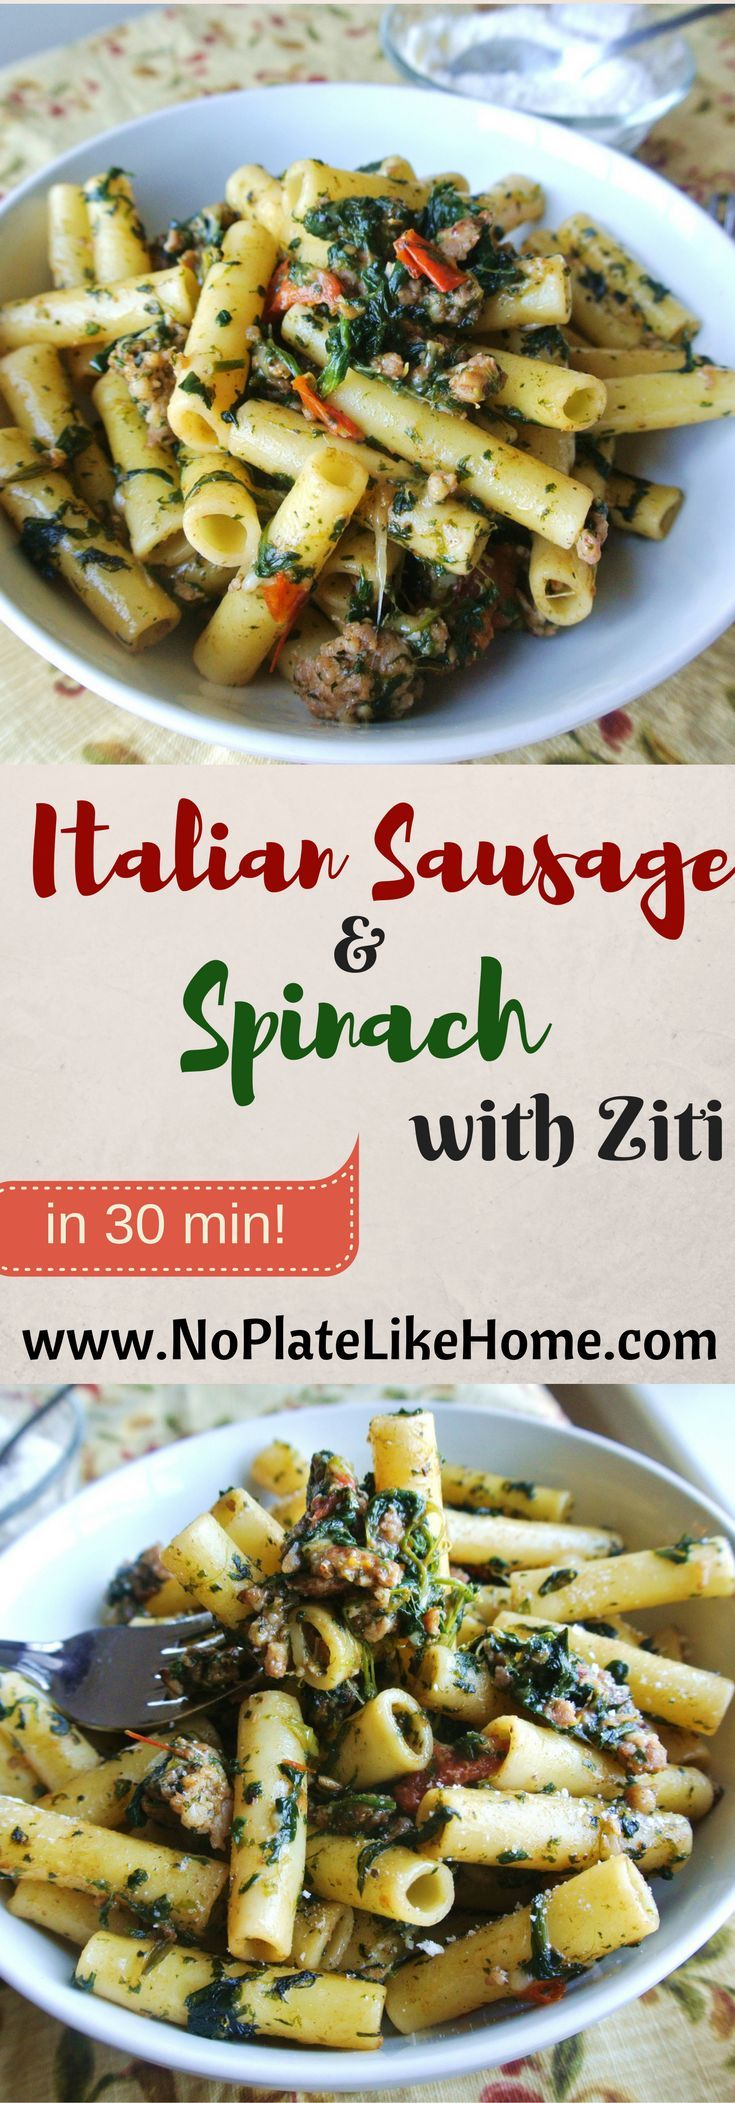 An easy and delicious Italian Sausage and Spinach with Ziti dish that can be made in 30 minutes. It is the perfect weeknight dinner or pasta meal!